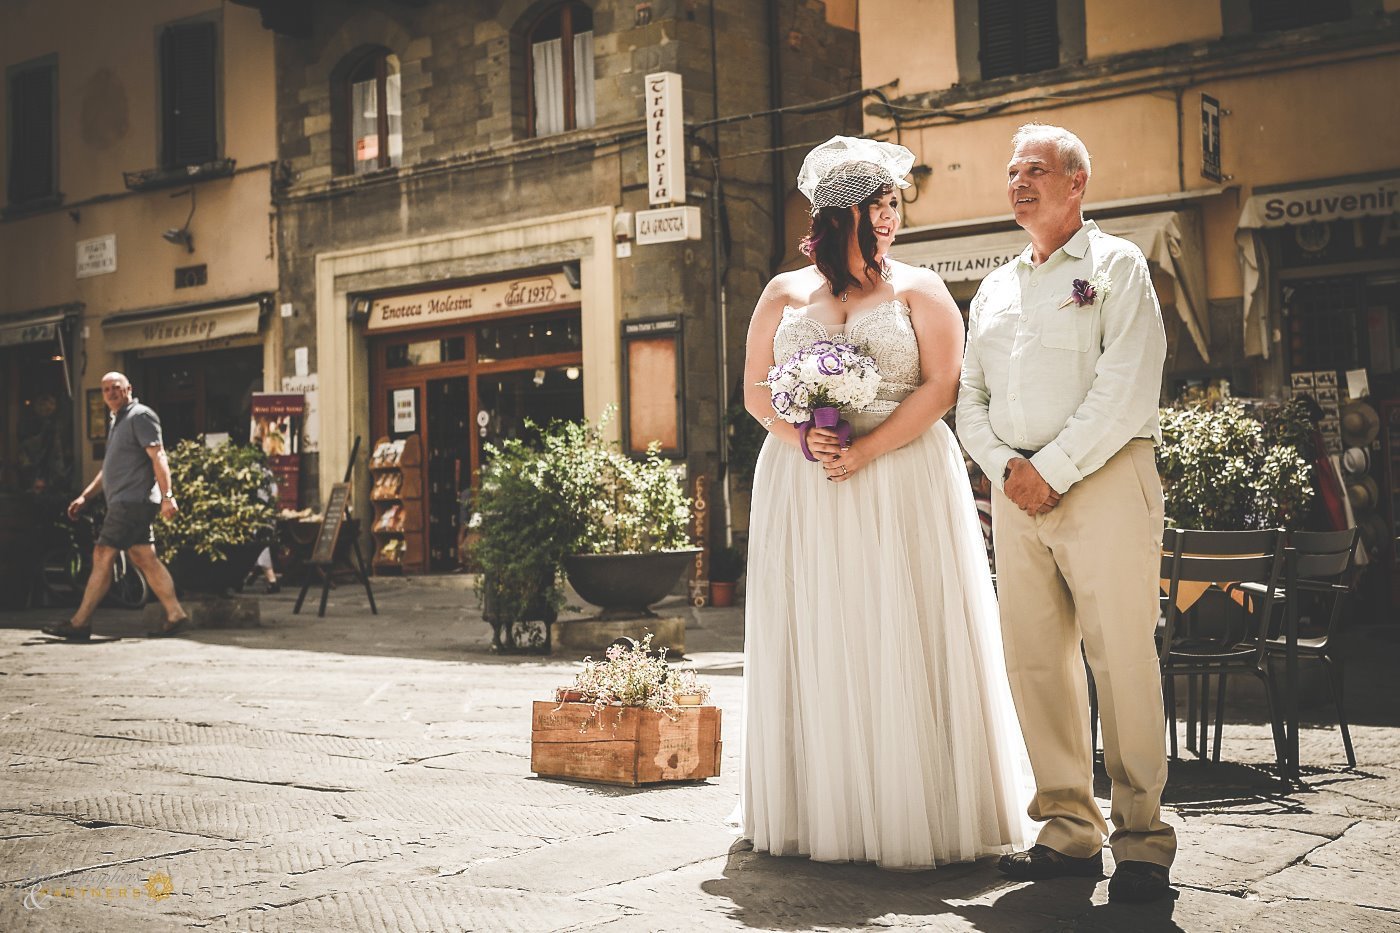 photographers_weddings_tuscany_02.jpg